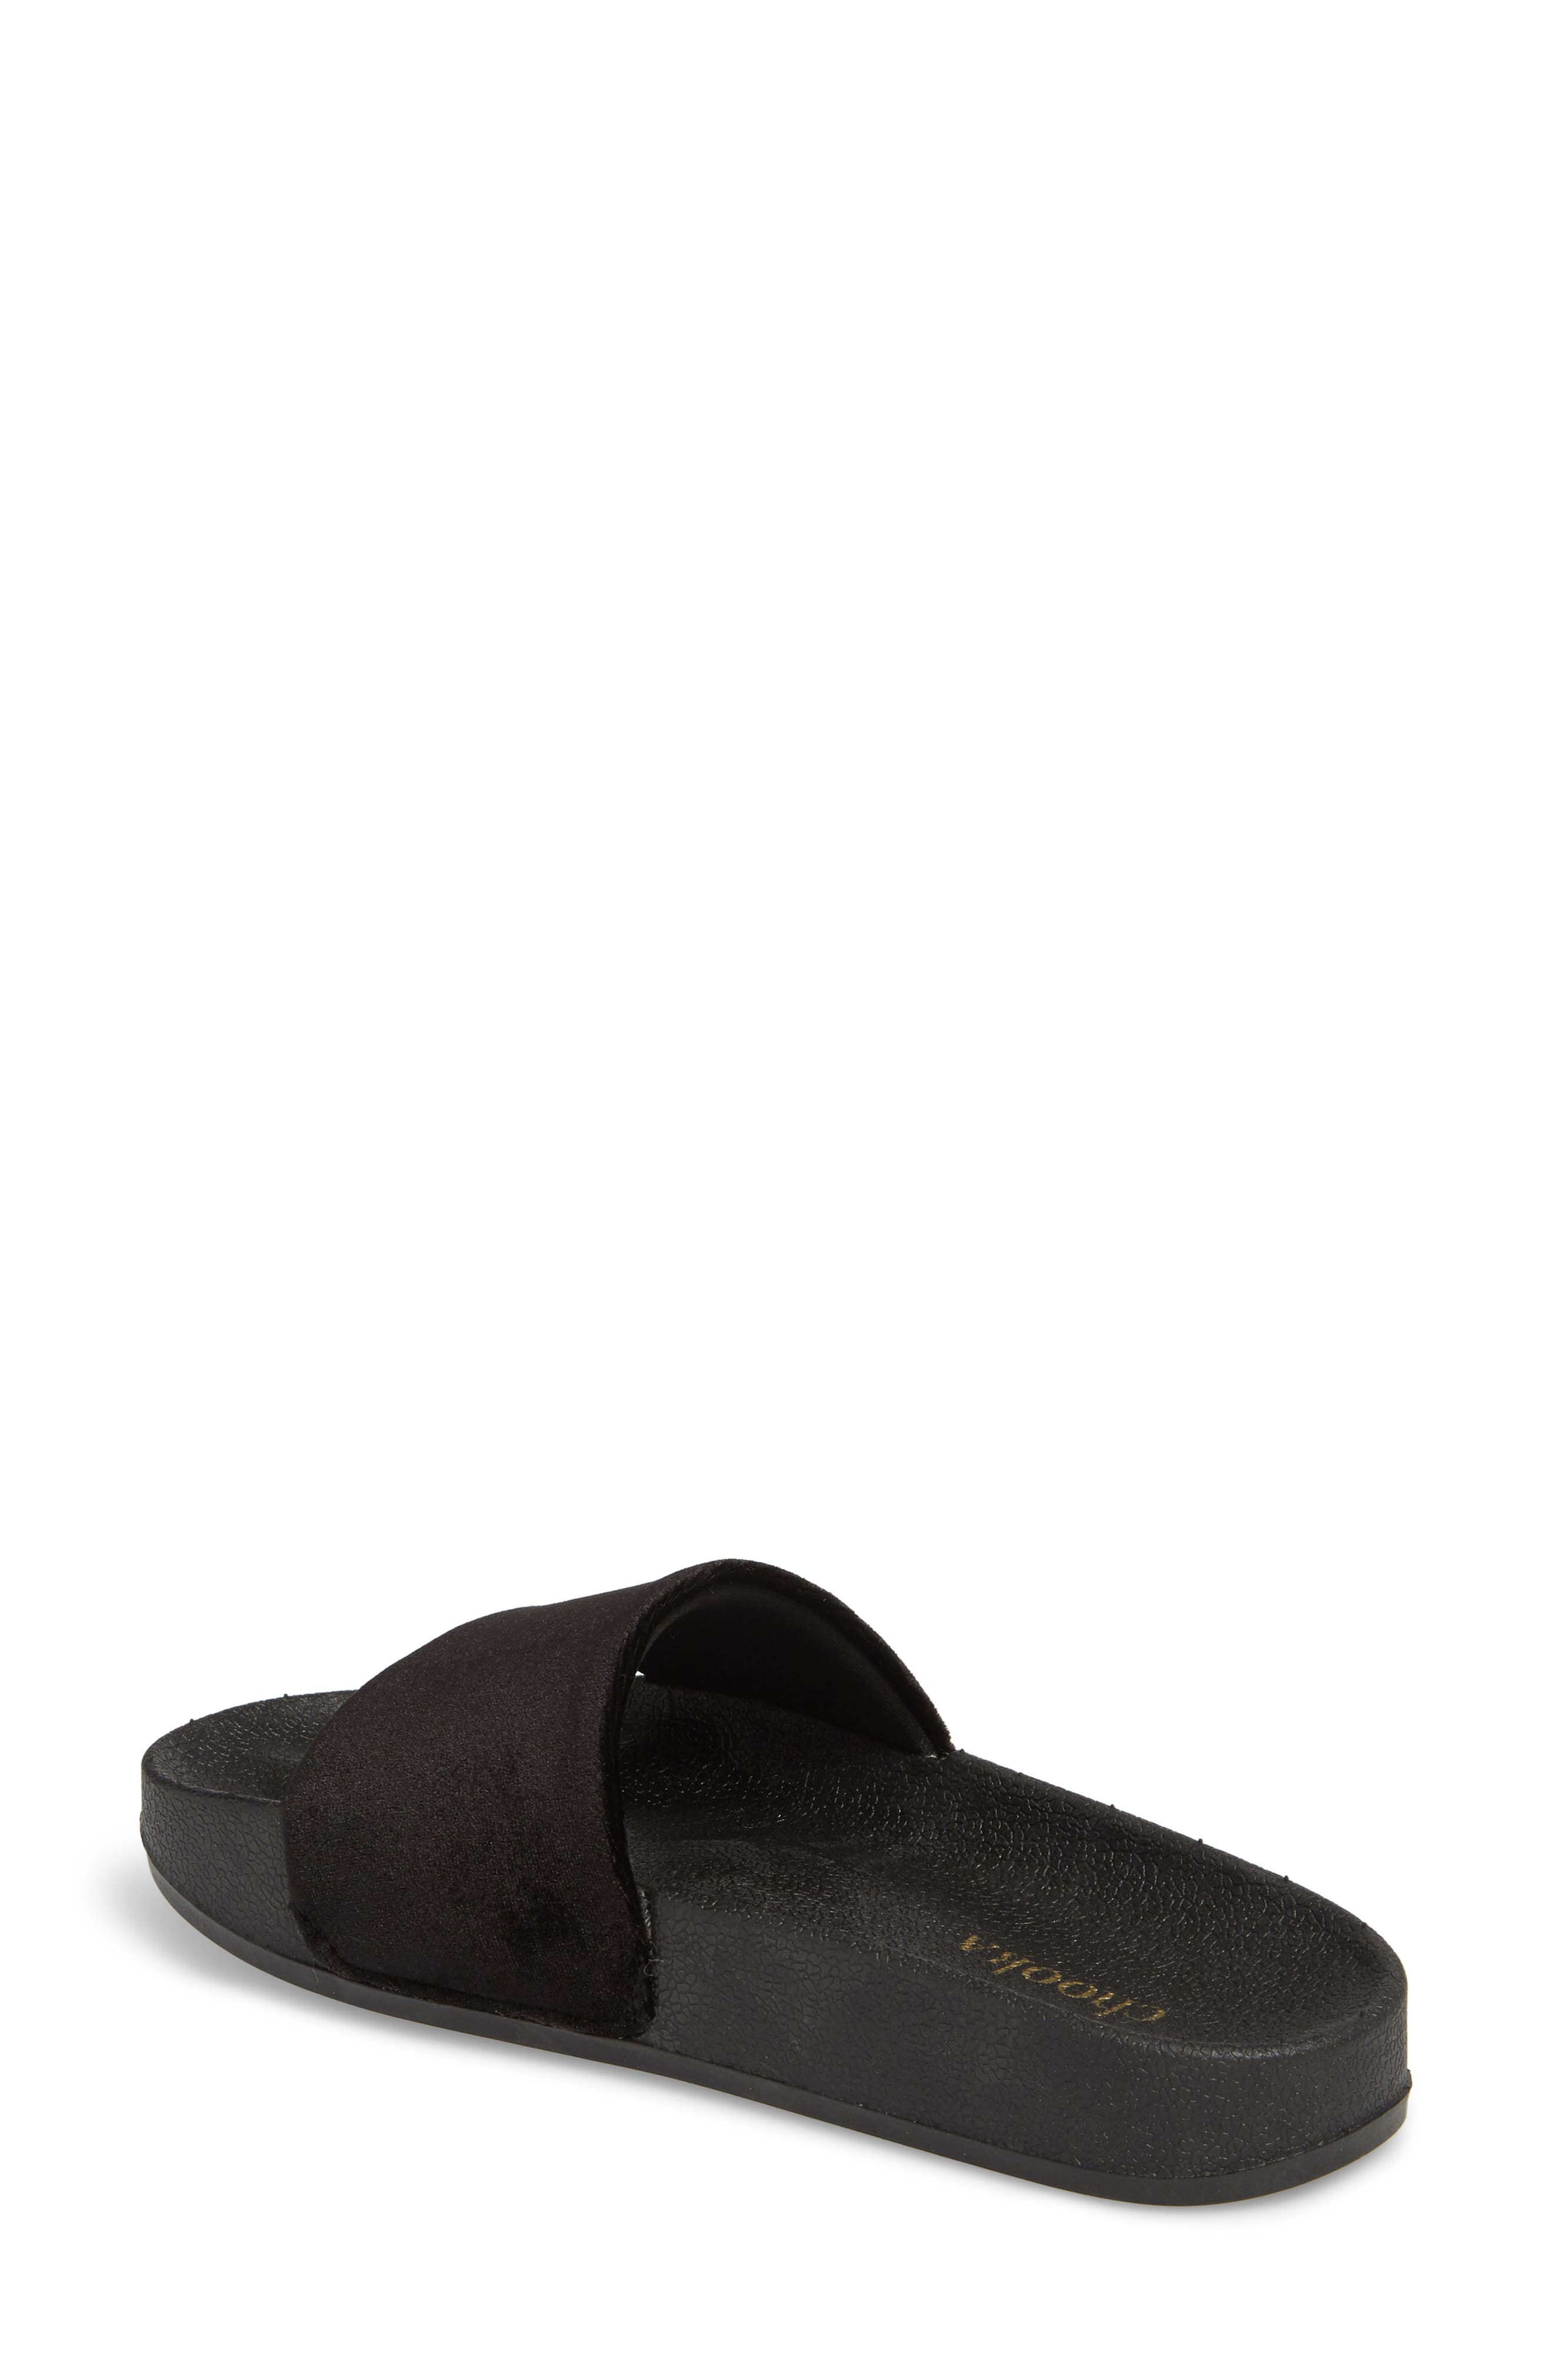 Slide Sandal,                             Alternate thumbnail 2, color,                             BLACK